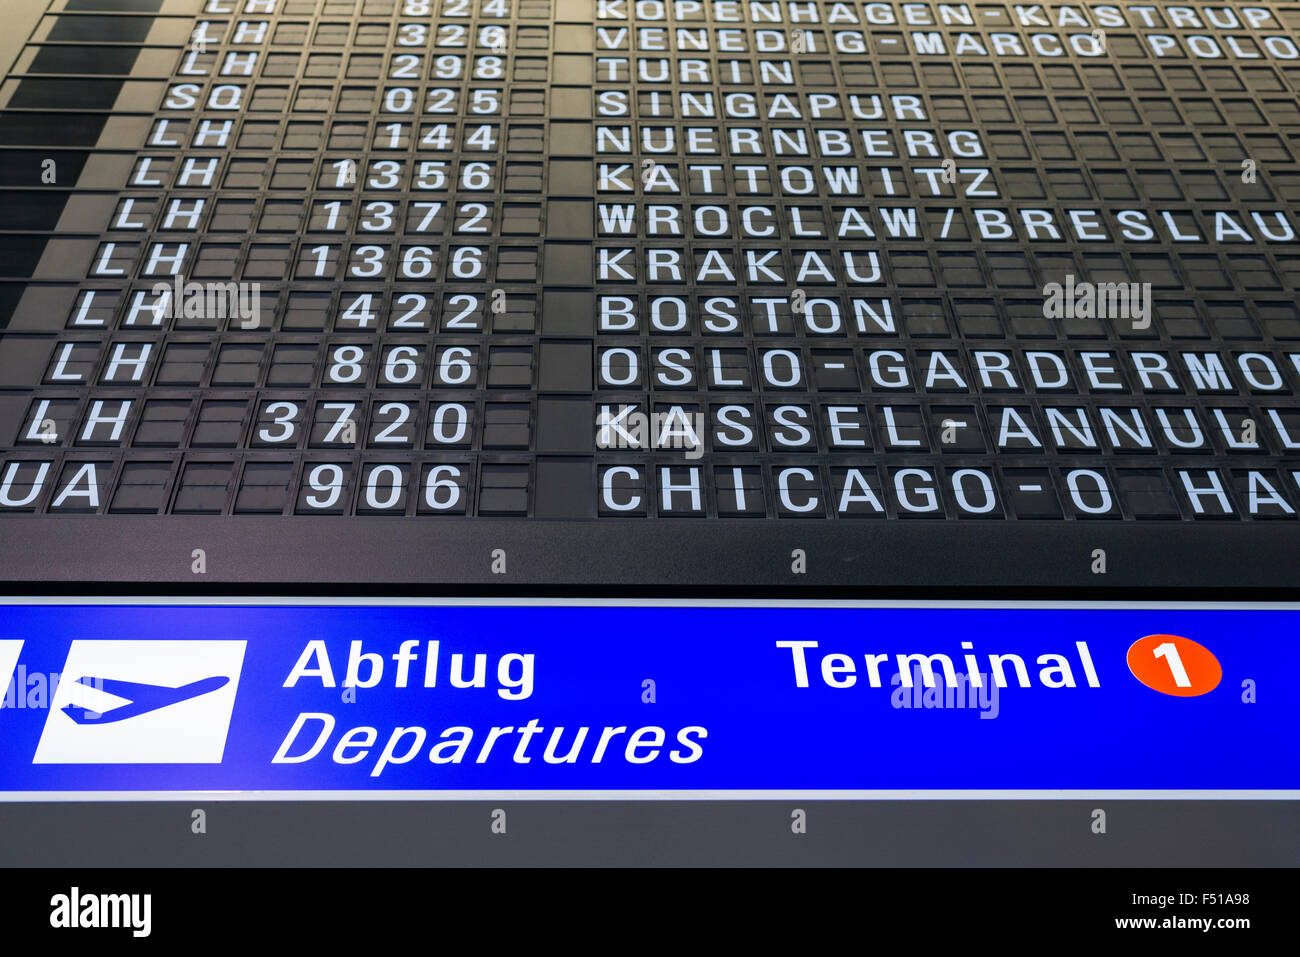 Part of the departure timetable at Terminal 1 of Frankfurt International Airport - Stock Image